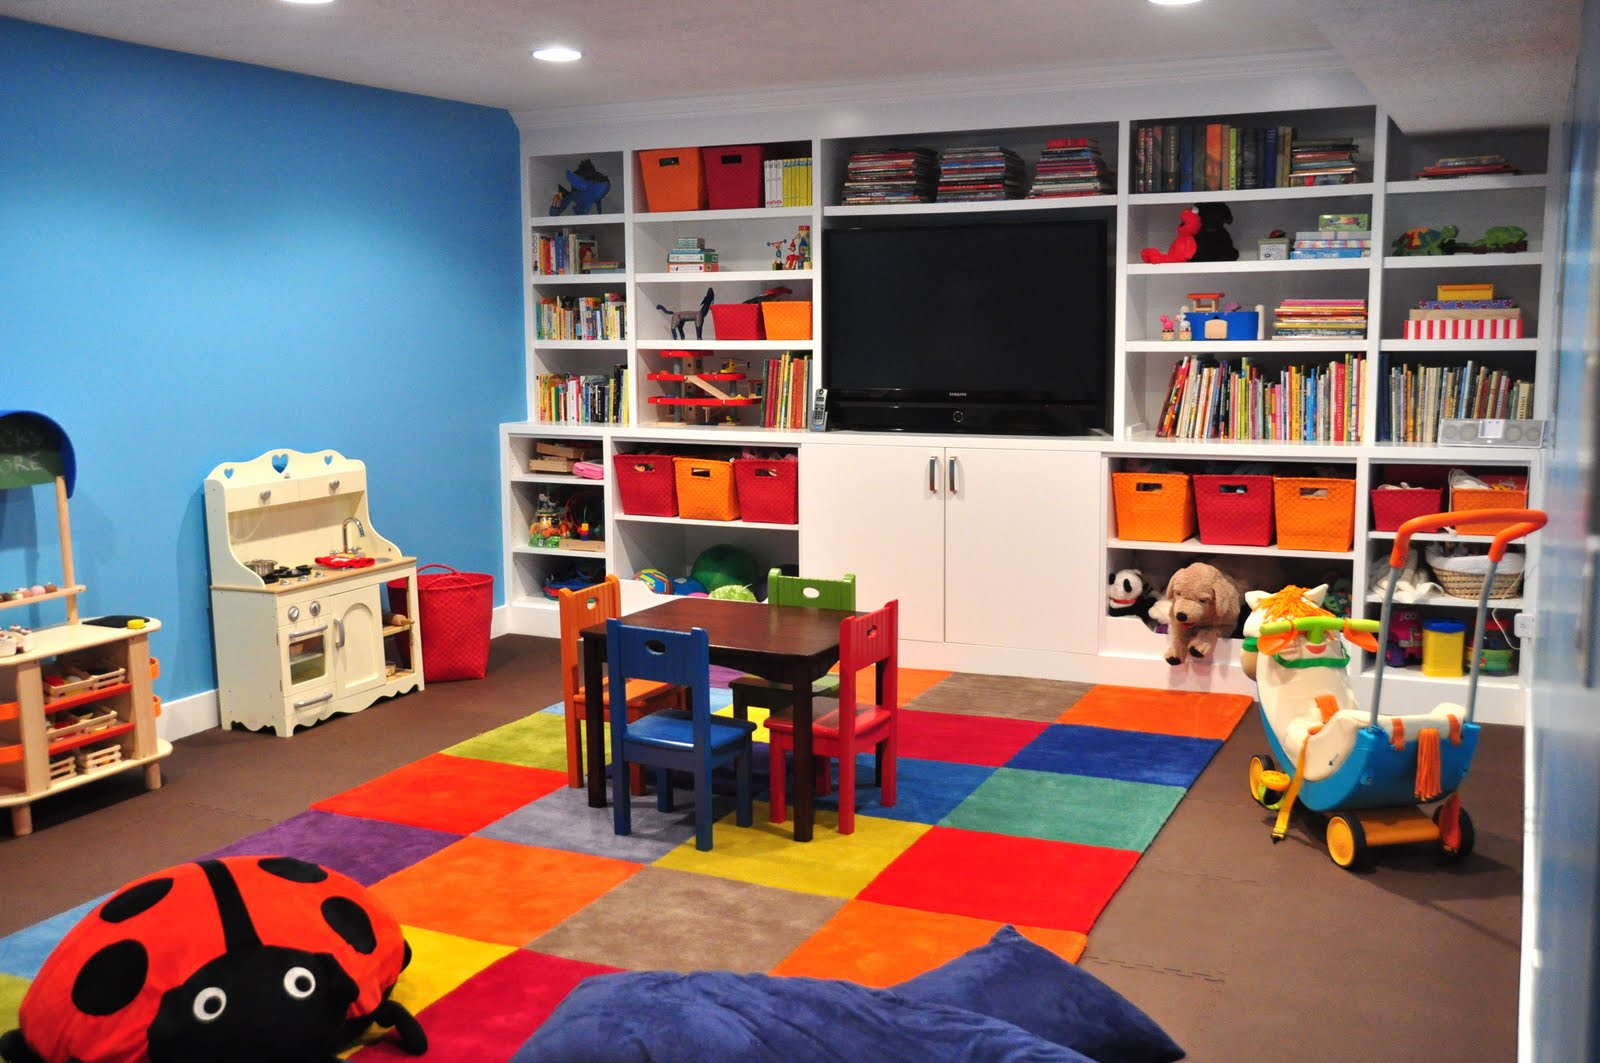 Patchwork Rug Of Bright Multicolored Squares Built In Storage And Flatscreen TV (View 9 of 10)